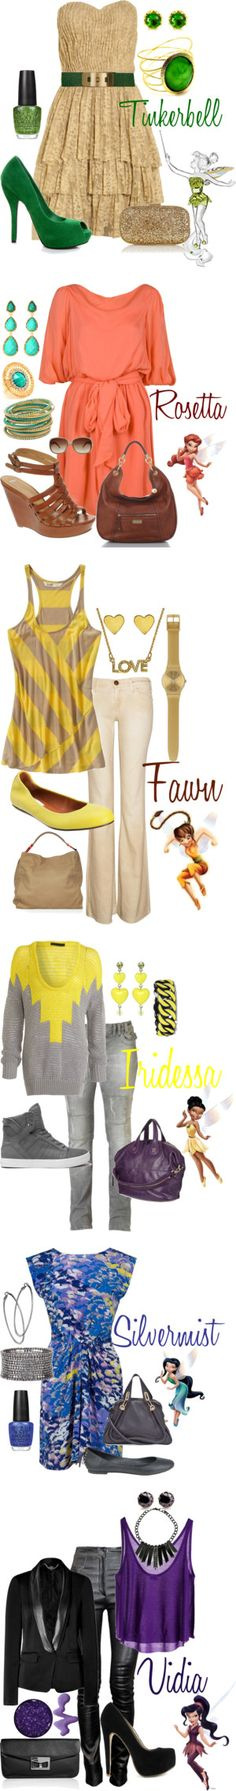 """Pixie Hollow"" by emp82 on Polyvore"